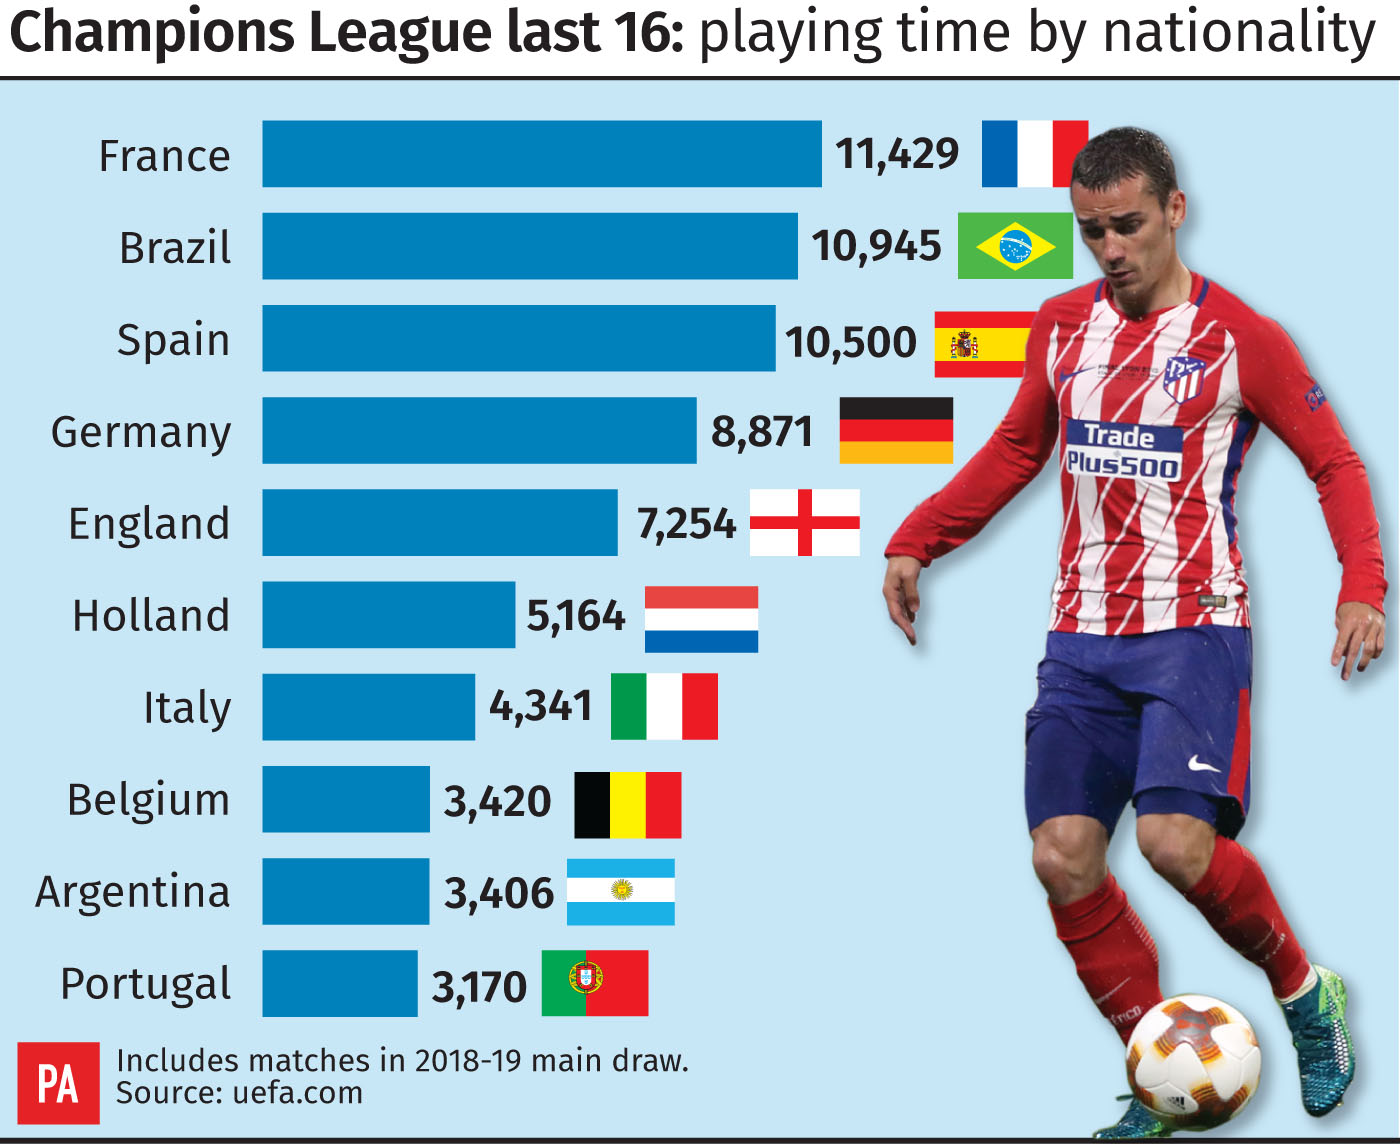 Champions League last 16: playing time by nationality